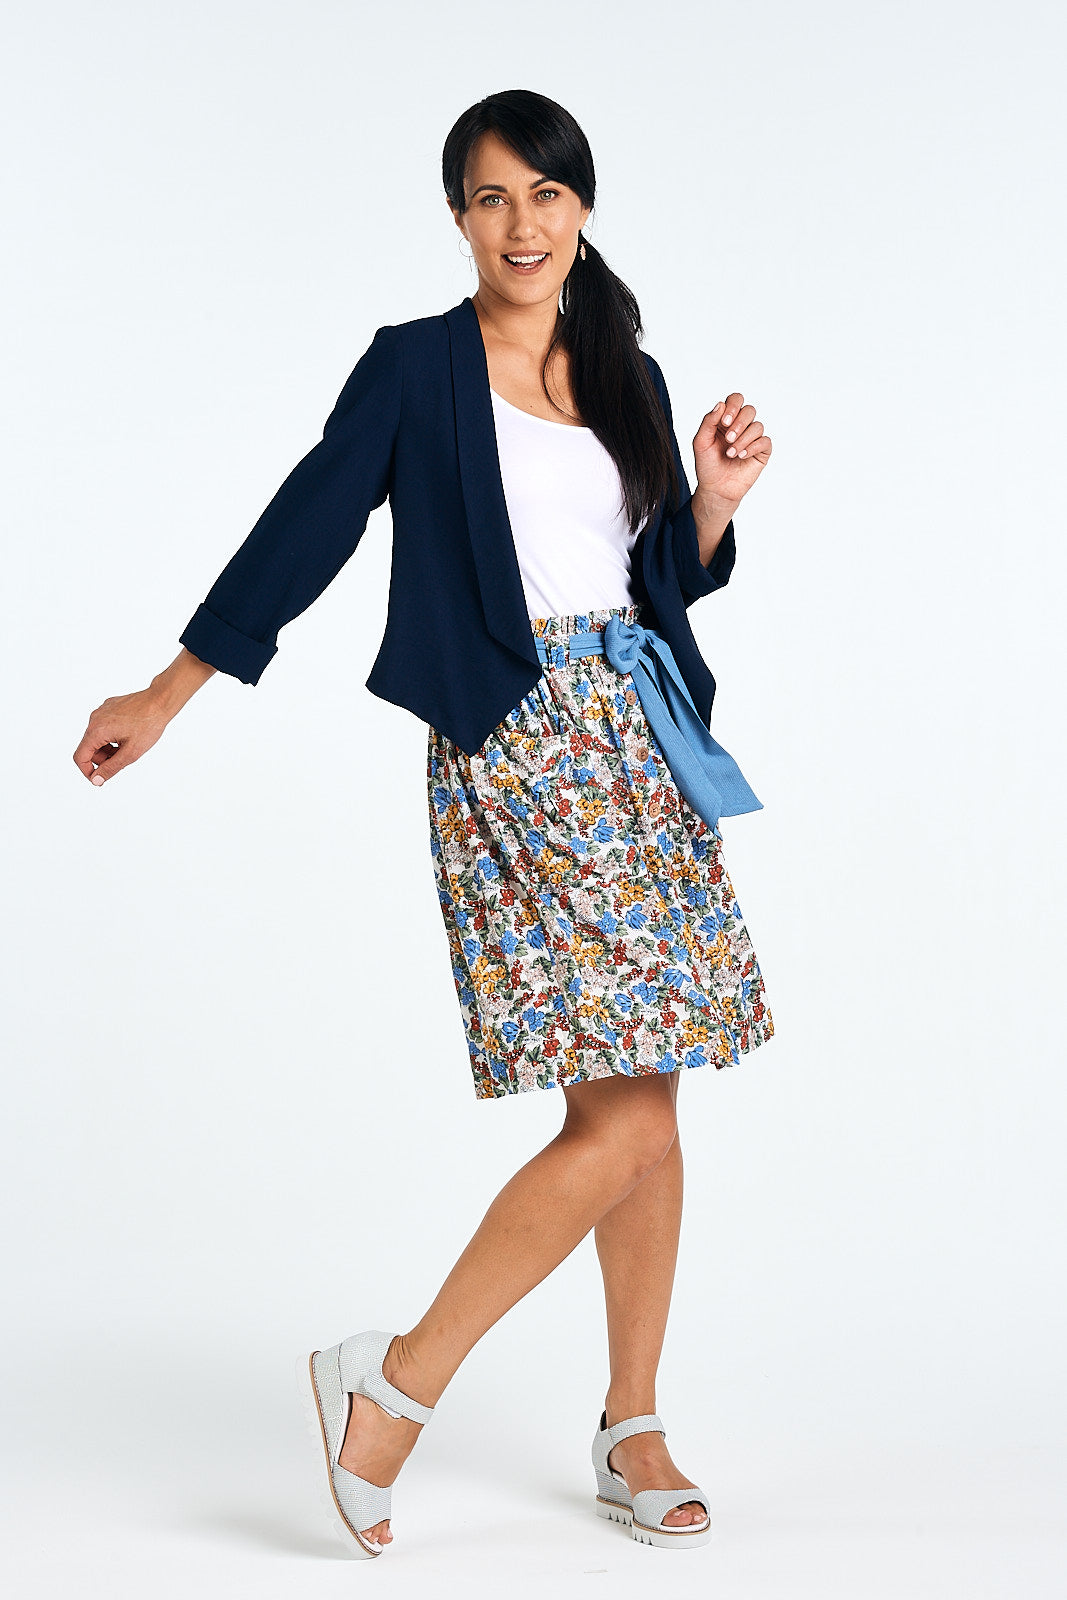 Helena Skirt, Summer Ditsy. Worn with Splash Jacket